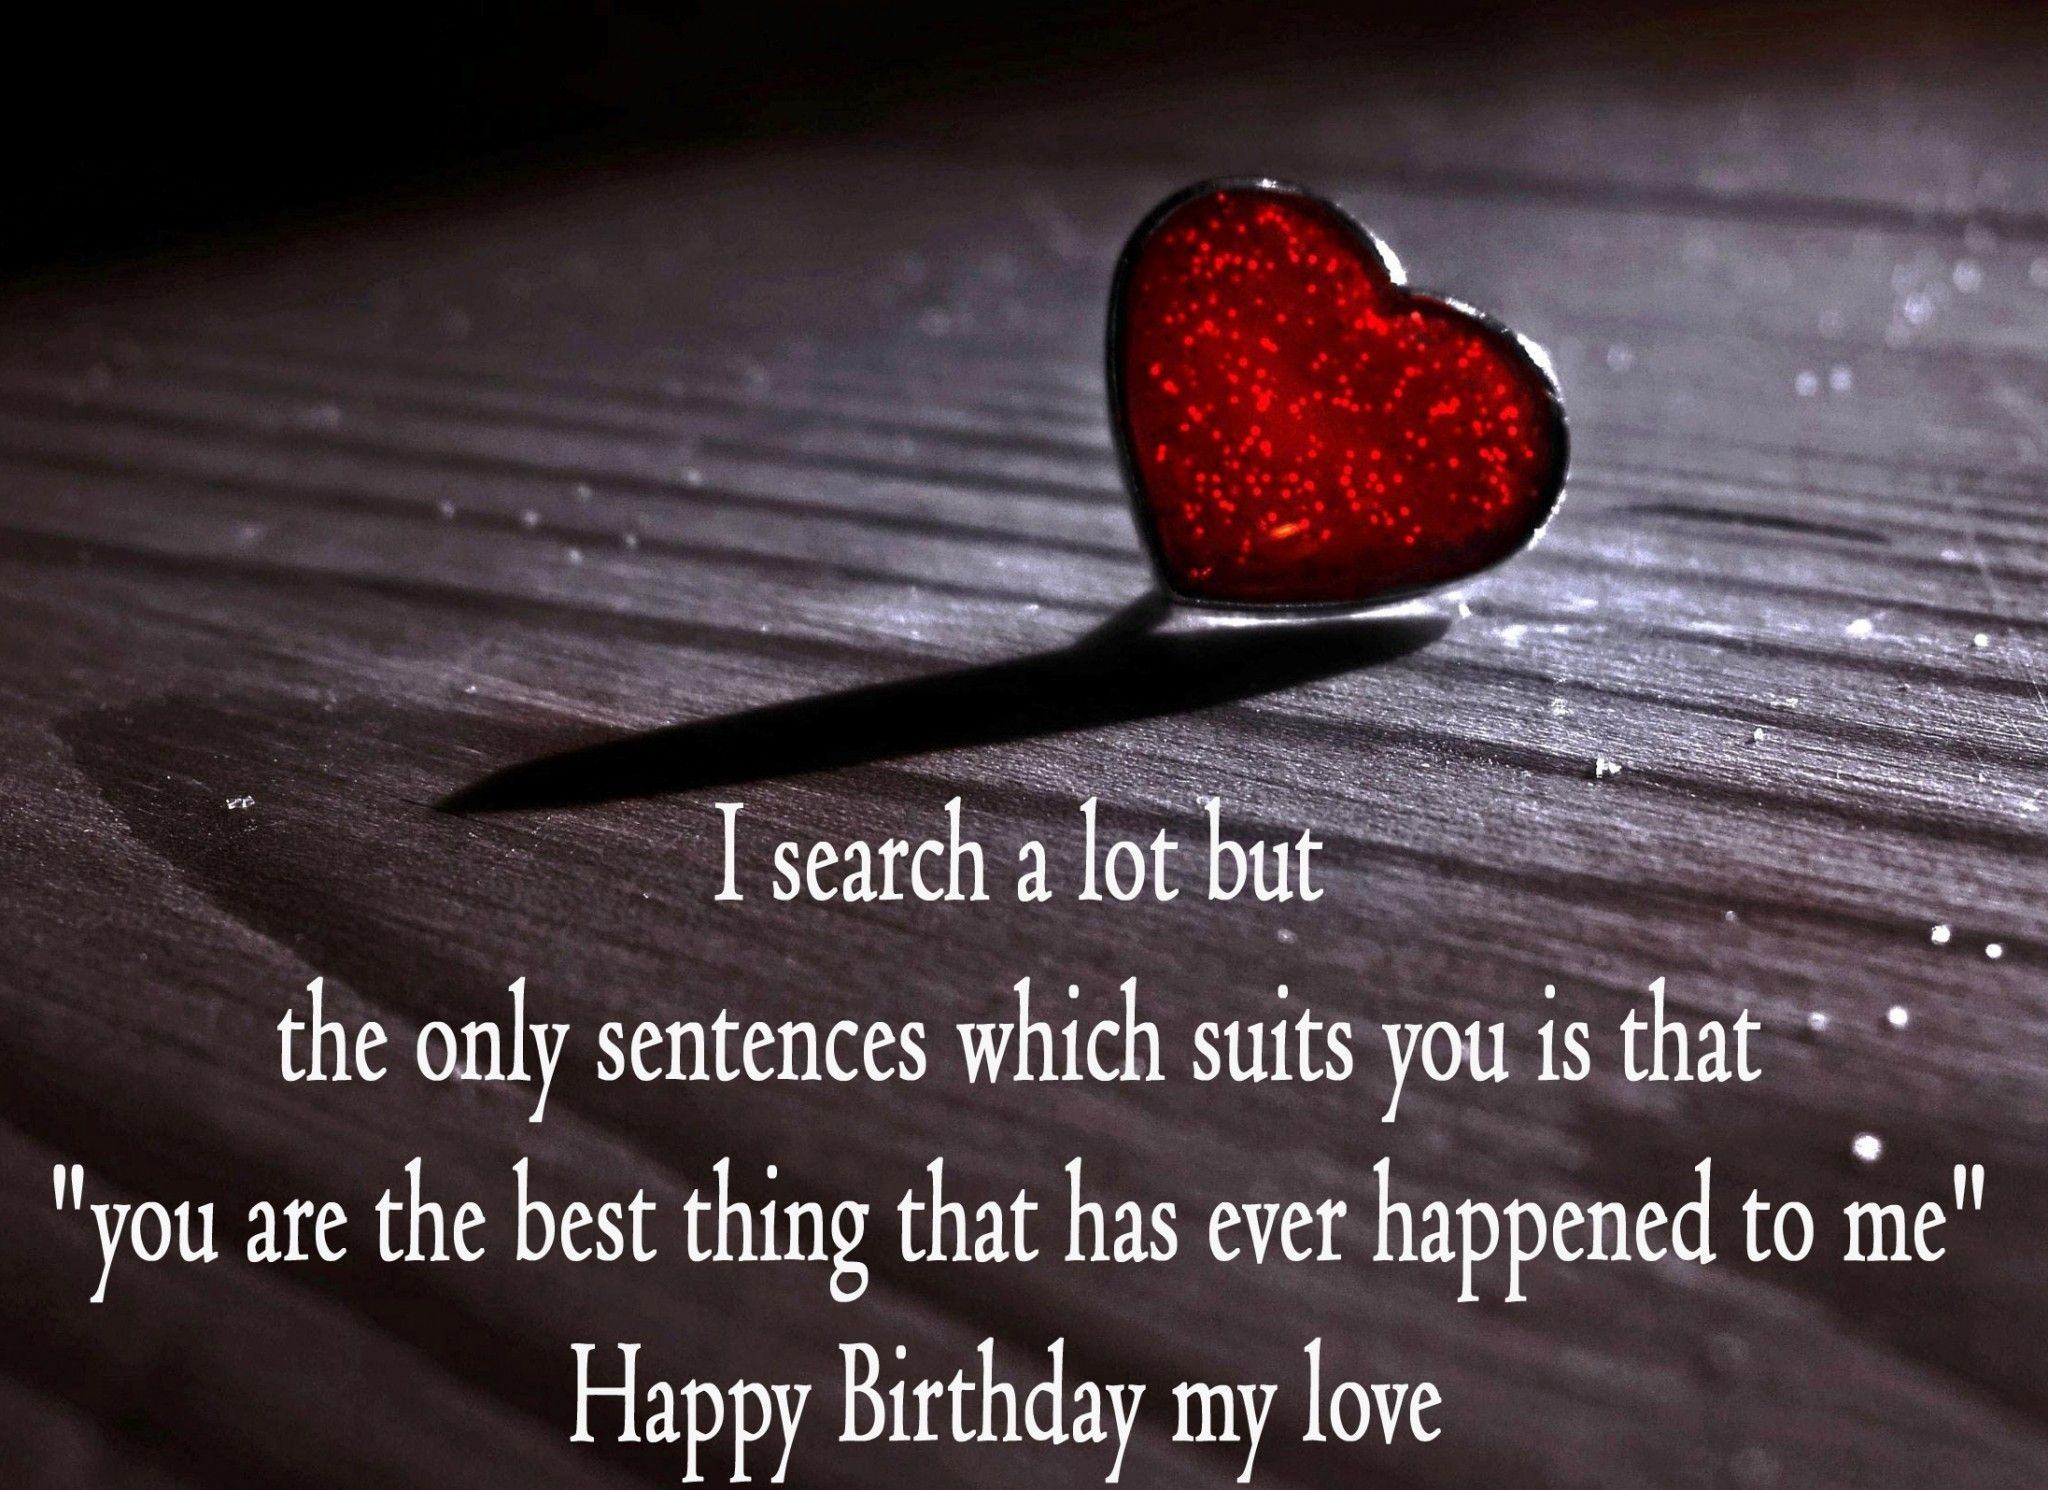 a romantic birthday message for my girlfriend ; 2a1b8f965f21acd010eb31035235a5cc